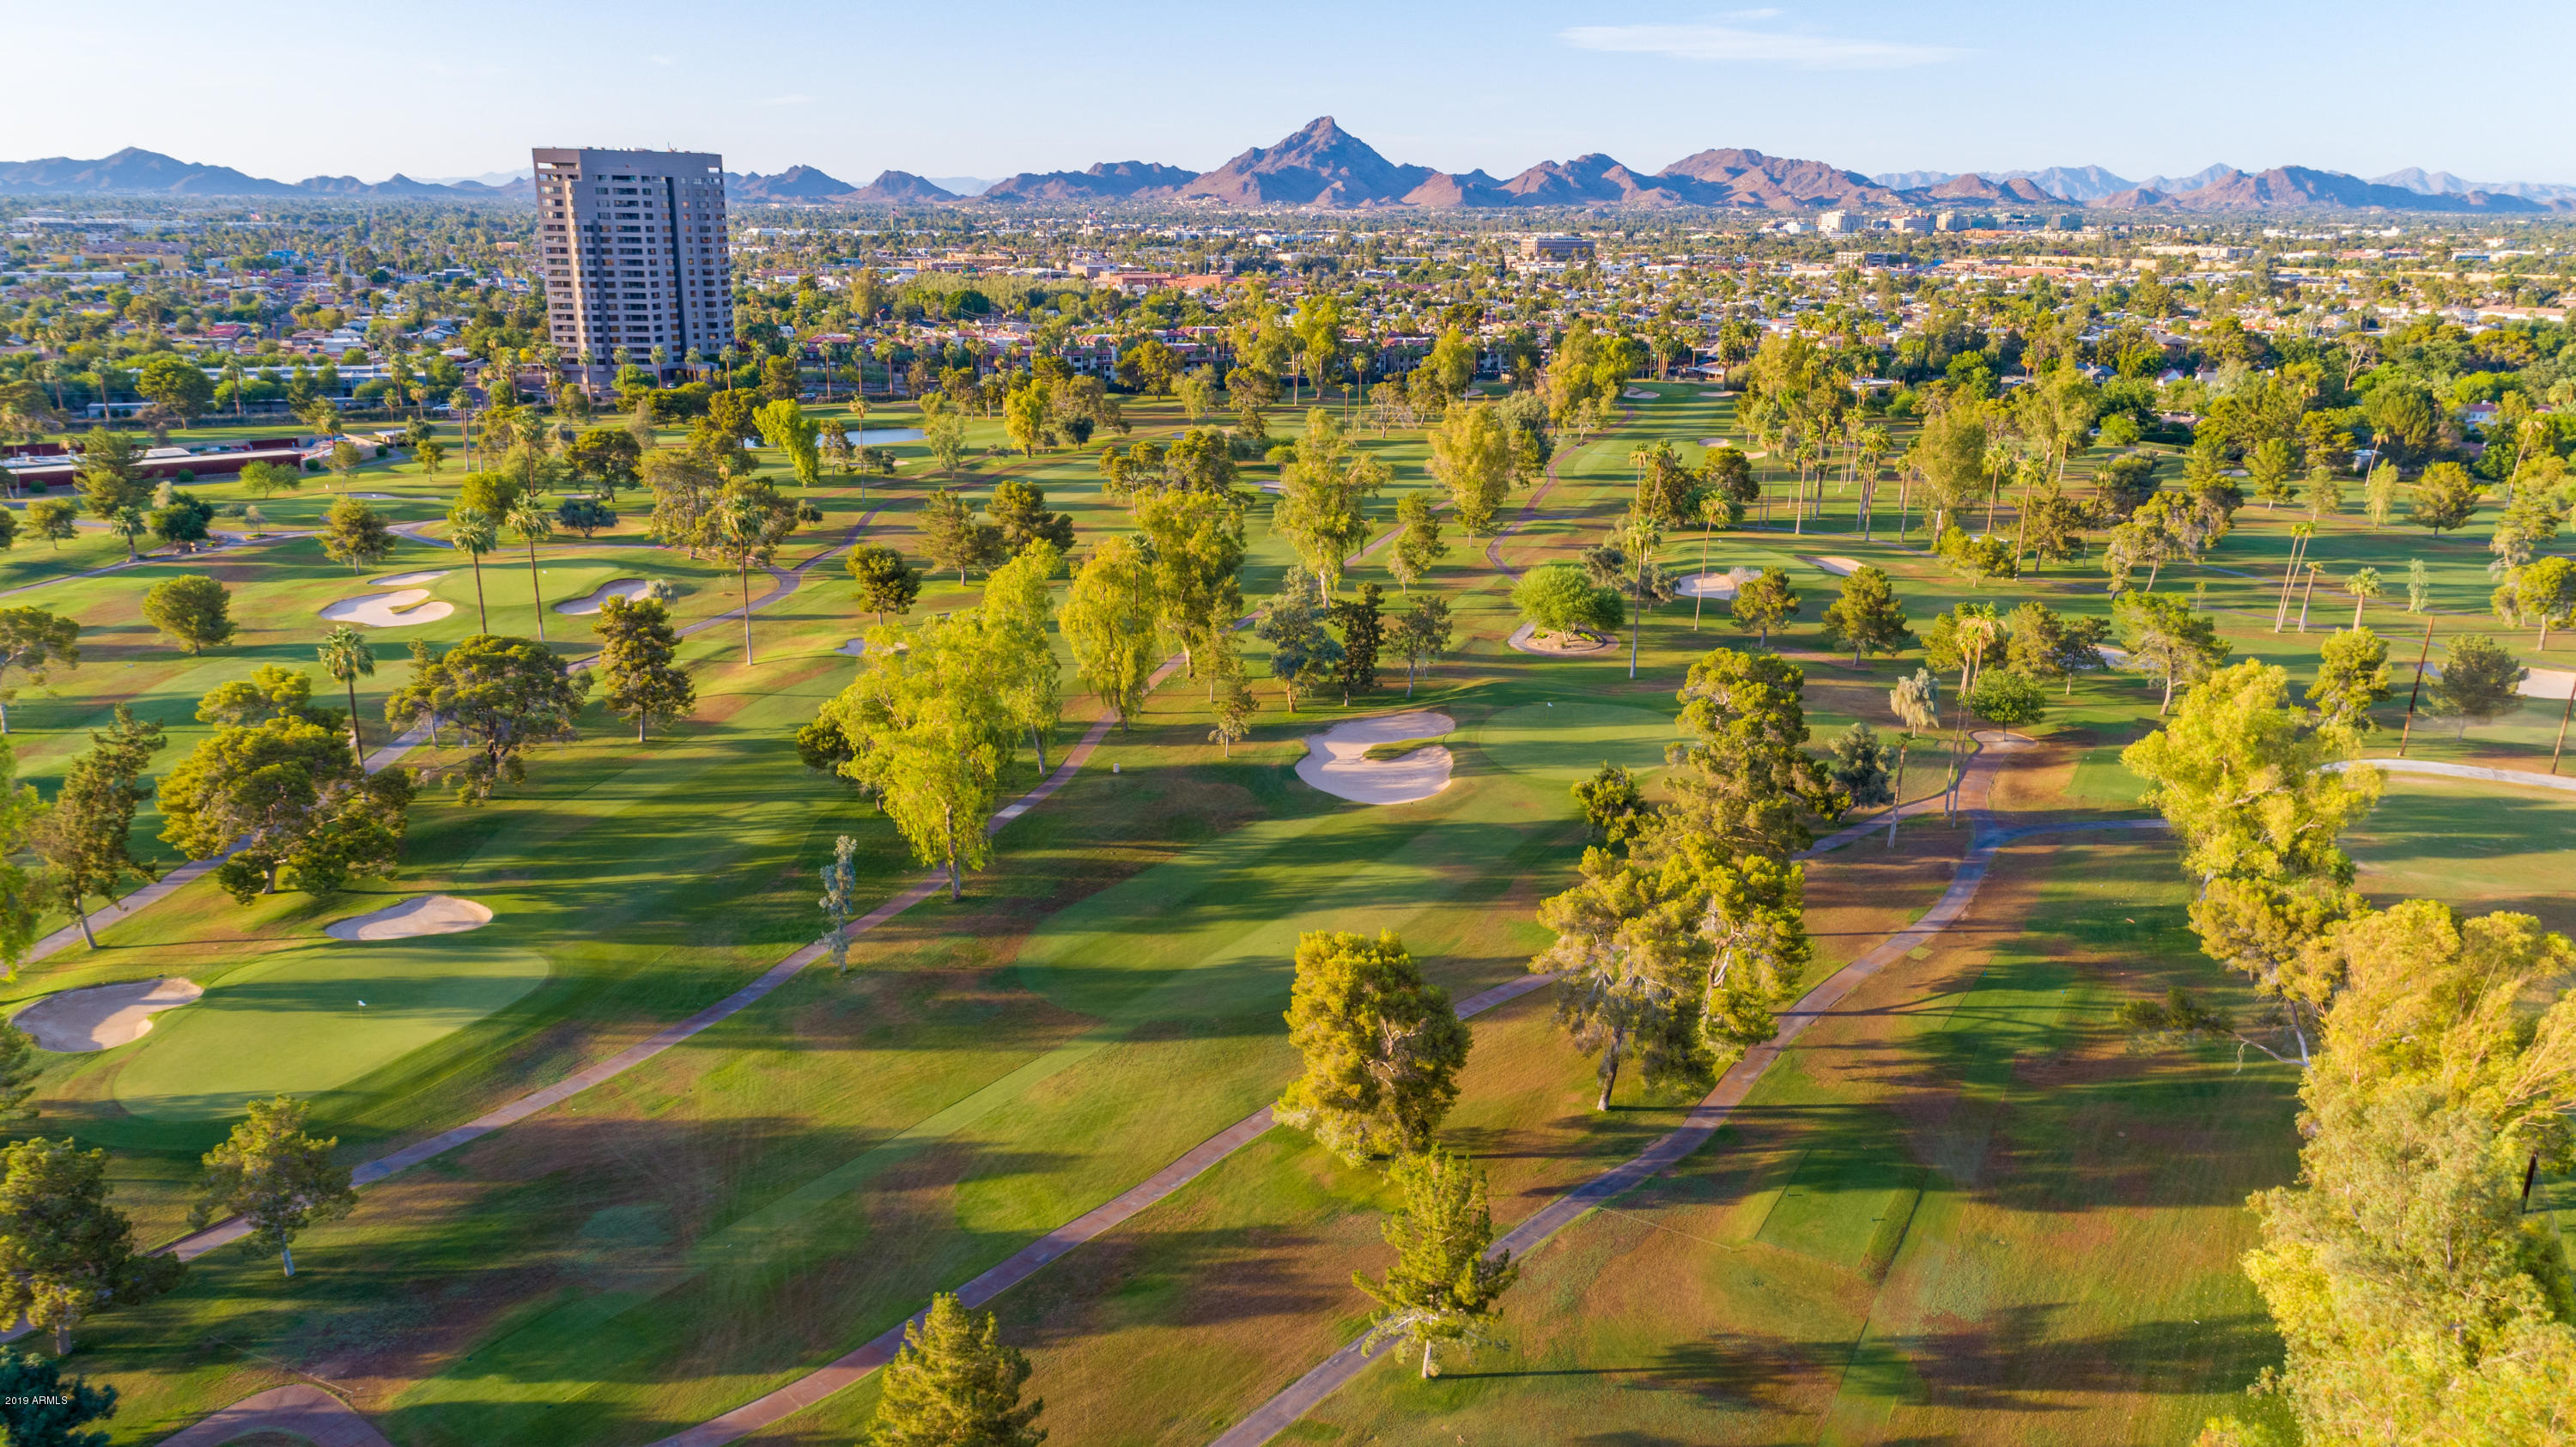 MLS 5934752 149 E COUNTRY CLUB Drive, Phoenix, AZ 85014 Phoenix AZ Golf